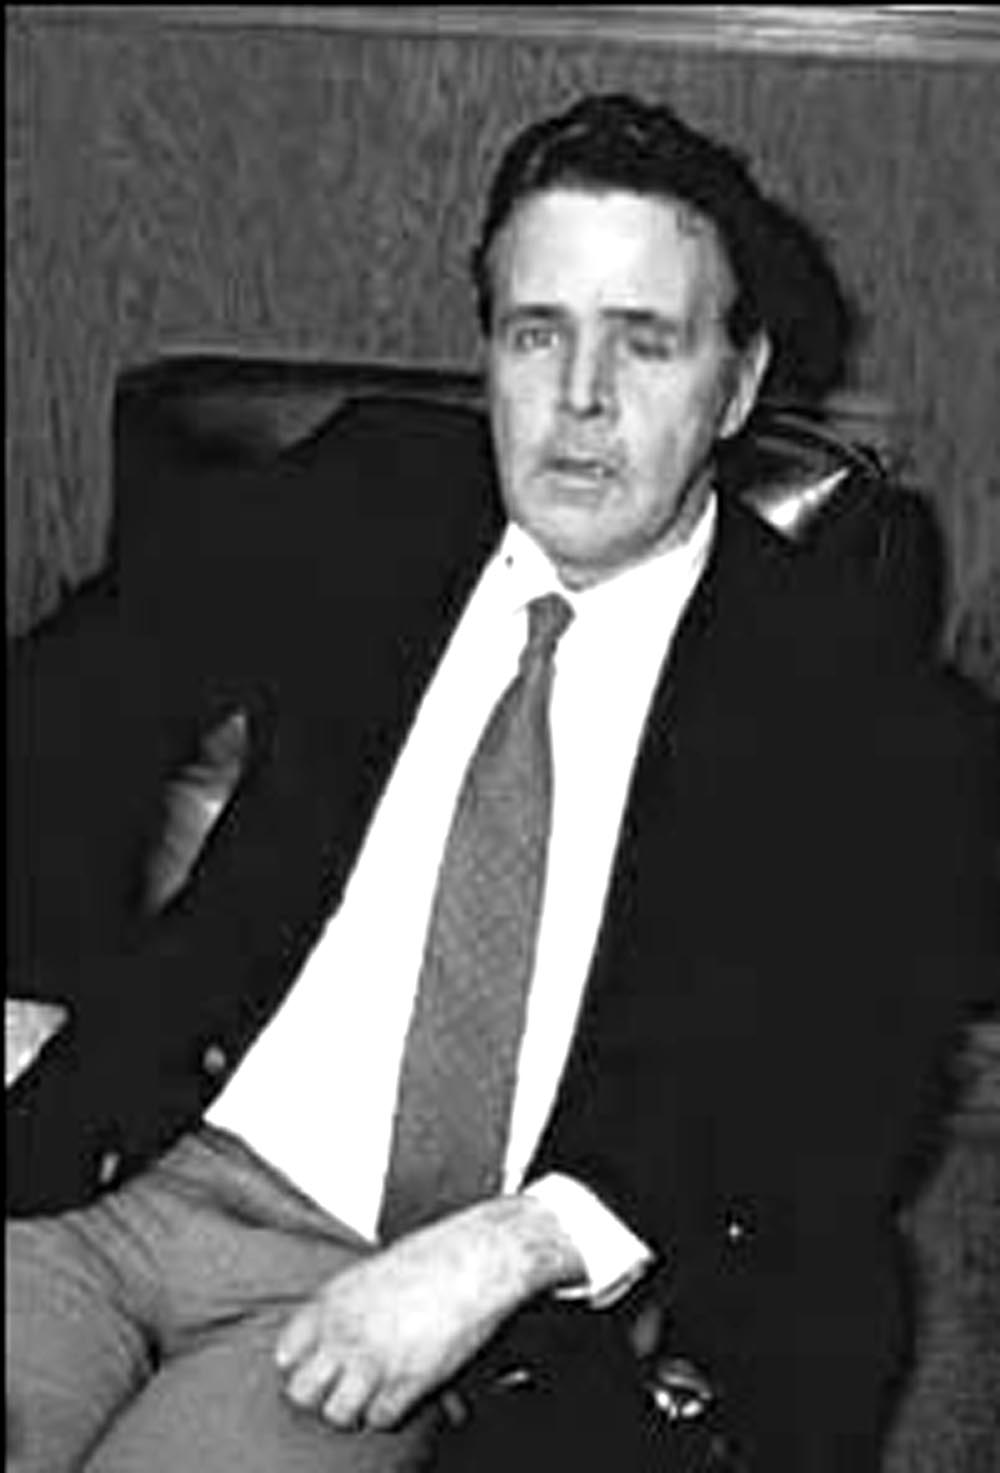 the life and death of henry lee lucas Henry lee lucas (the real life inspiration for henry: portrait of a serial  ottis  toole, now on florida's death row for murder, corroborated.